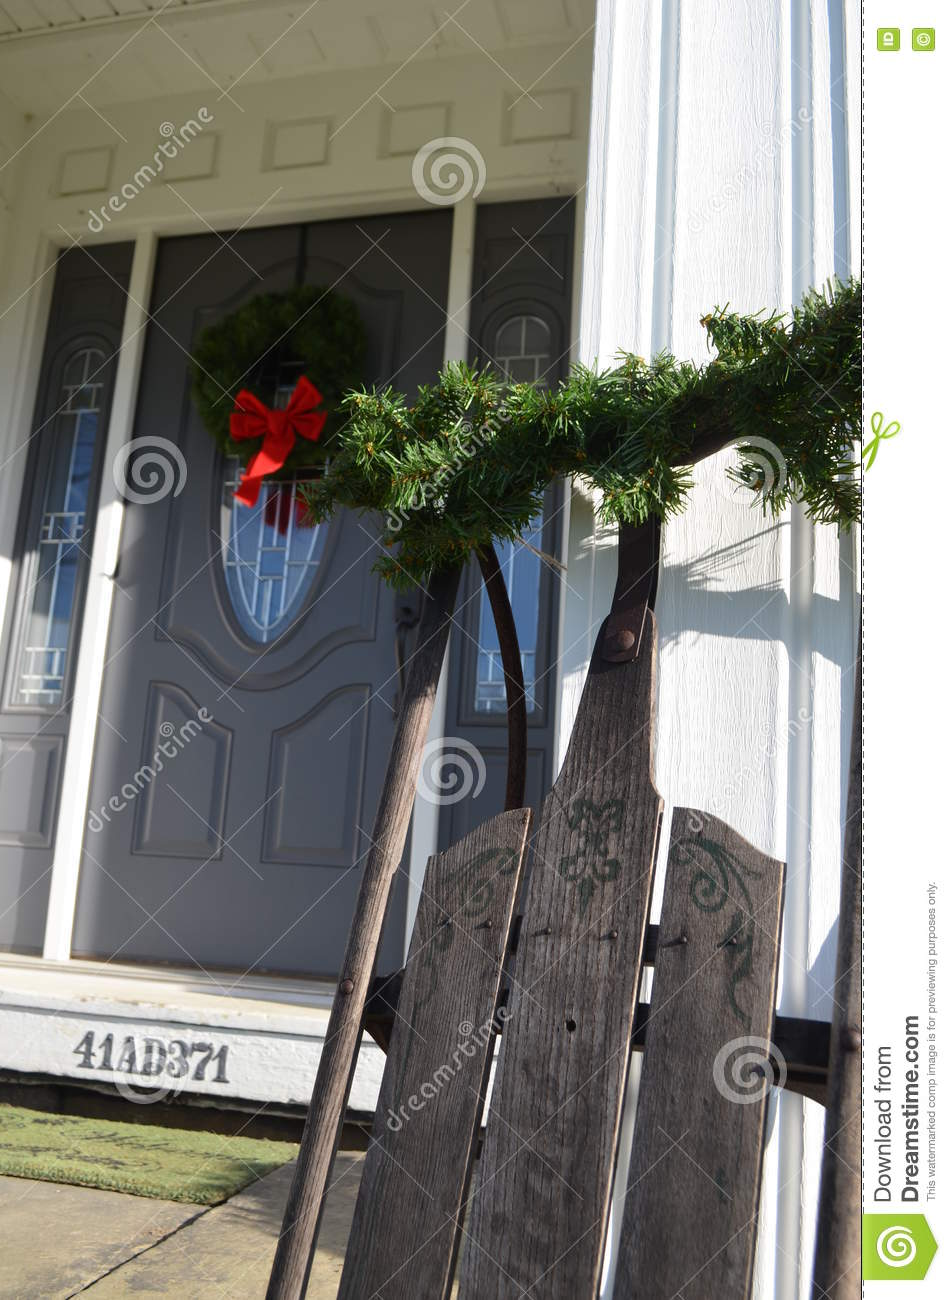 download vintage sled and christmas decorations on house stock photo image of welcoming window - Vintage Sled Christmas Decoration